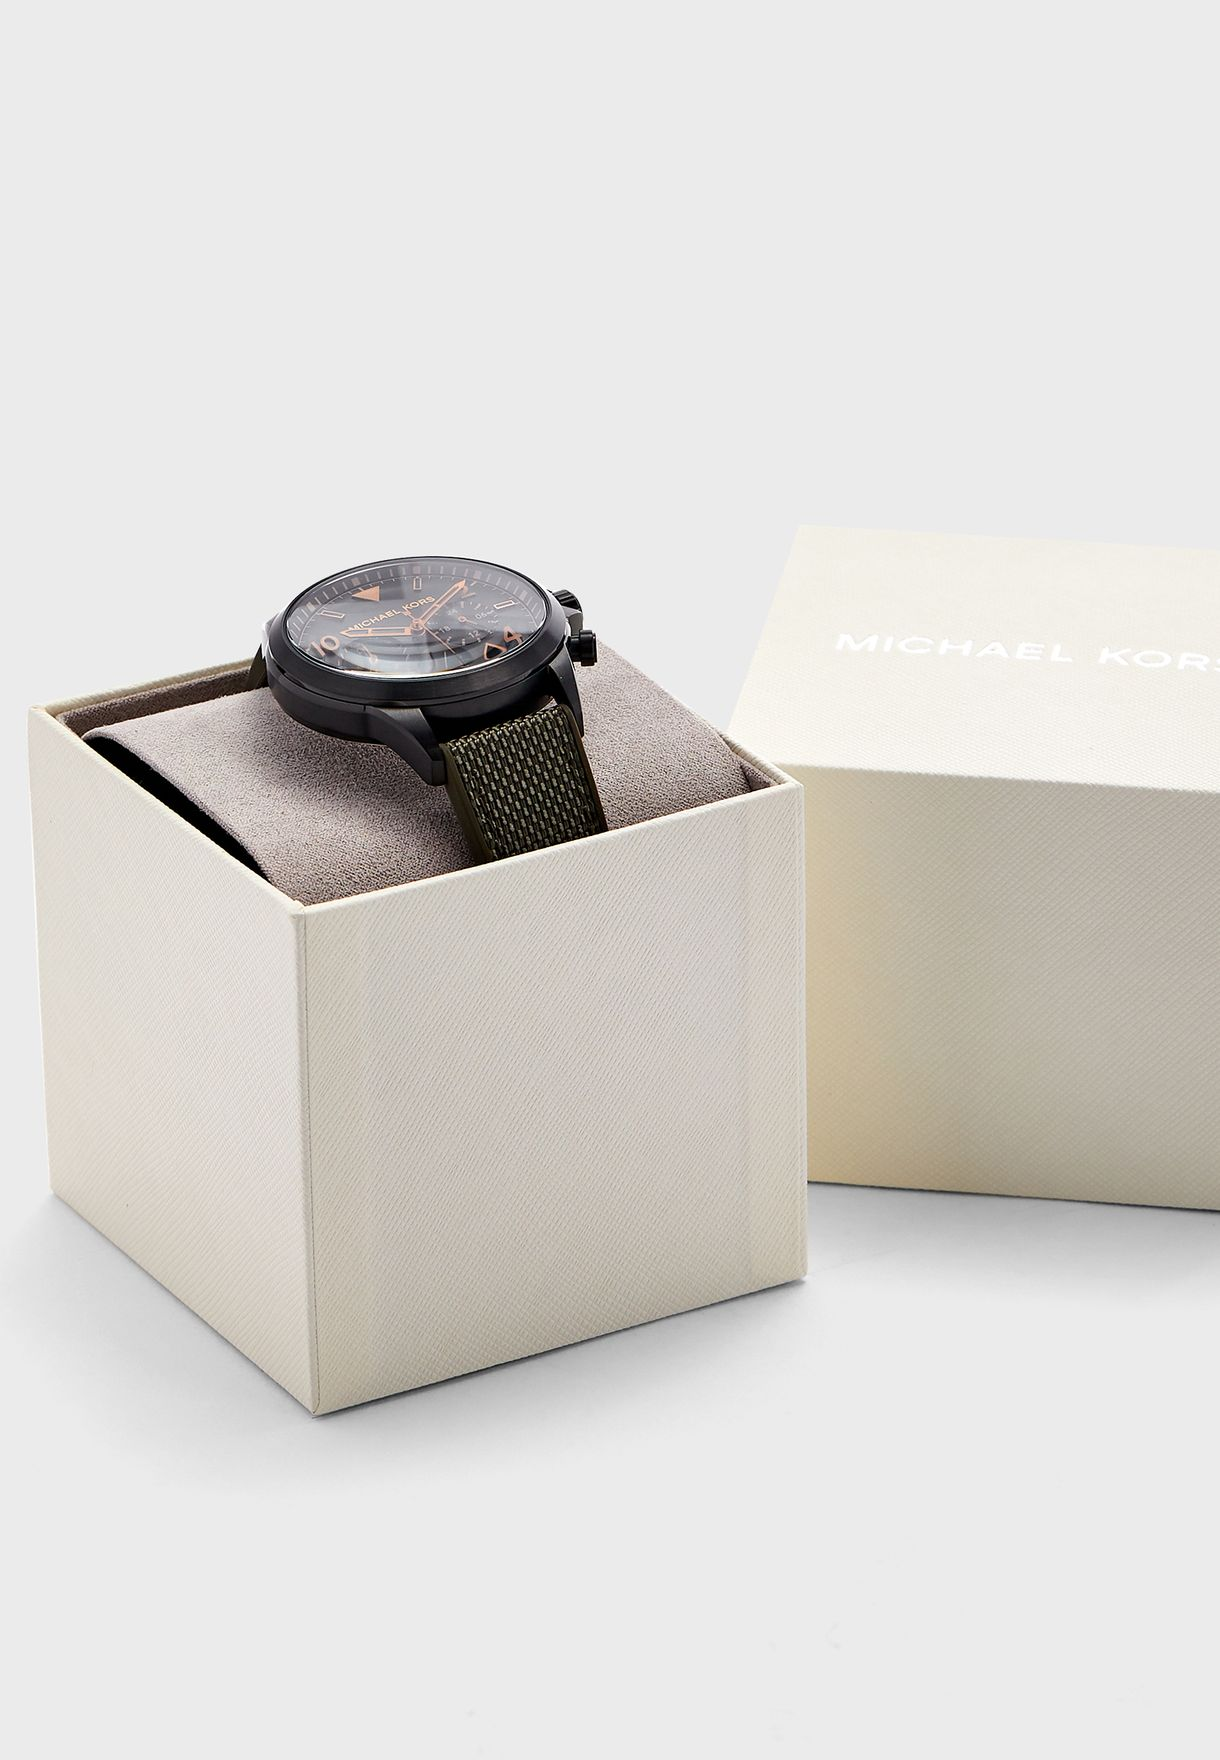 MK8788 Analog Watch